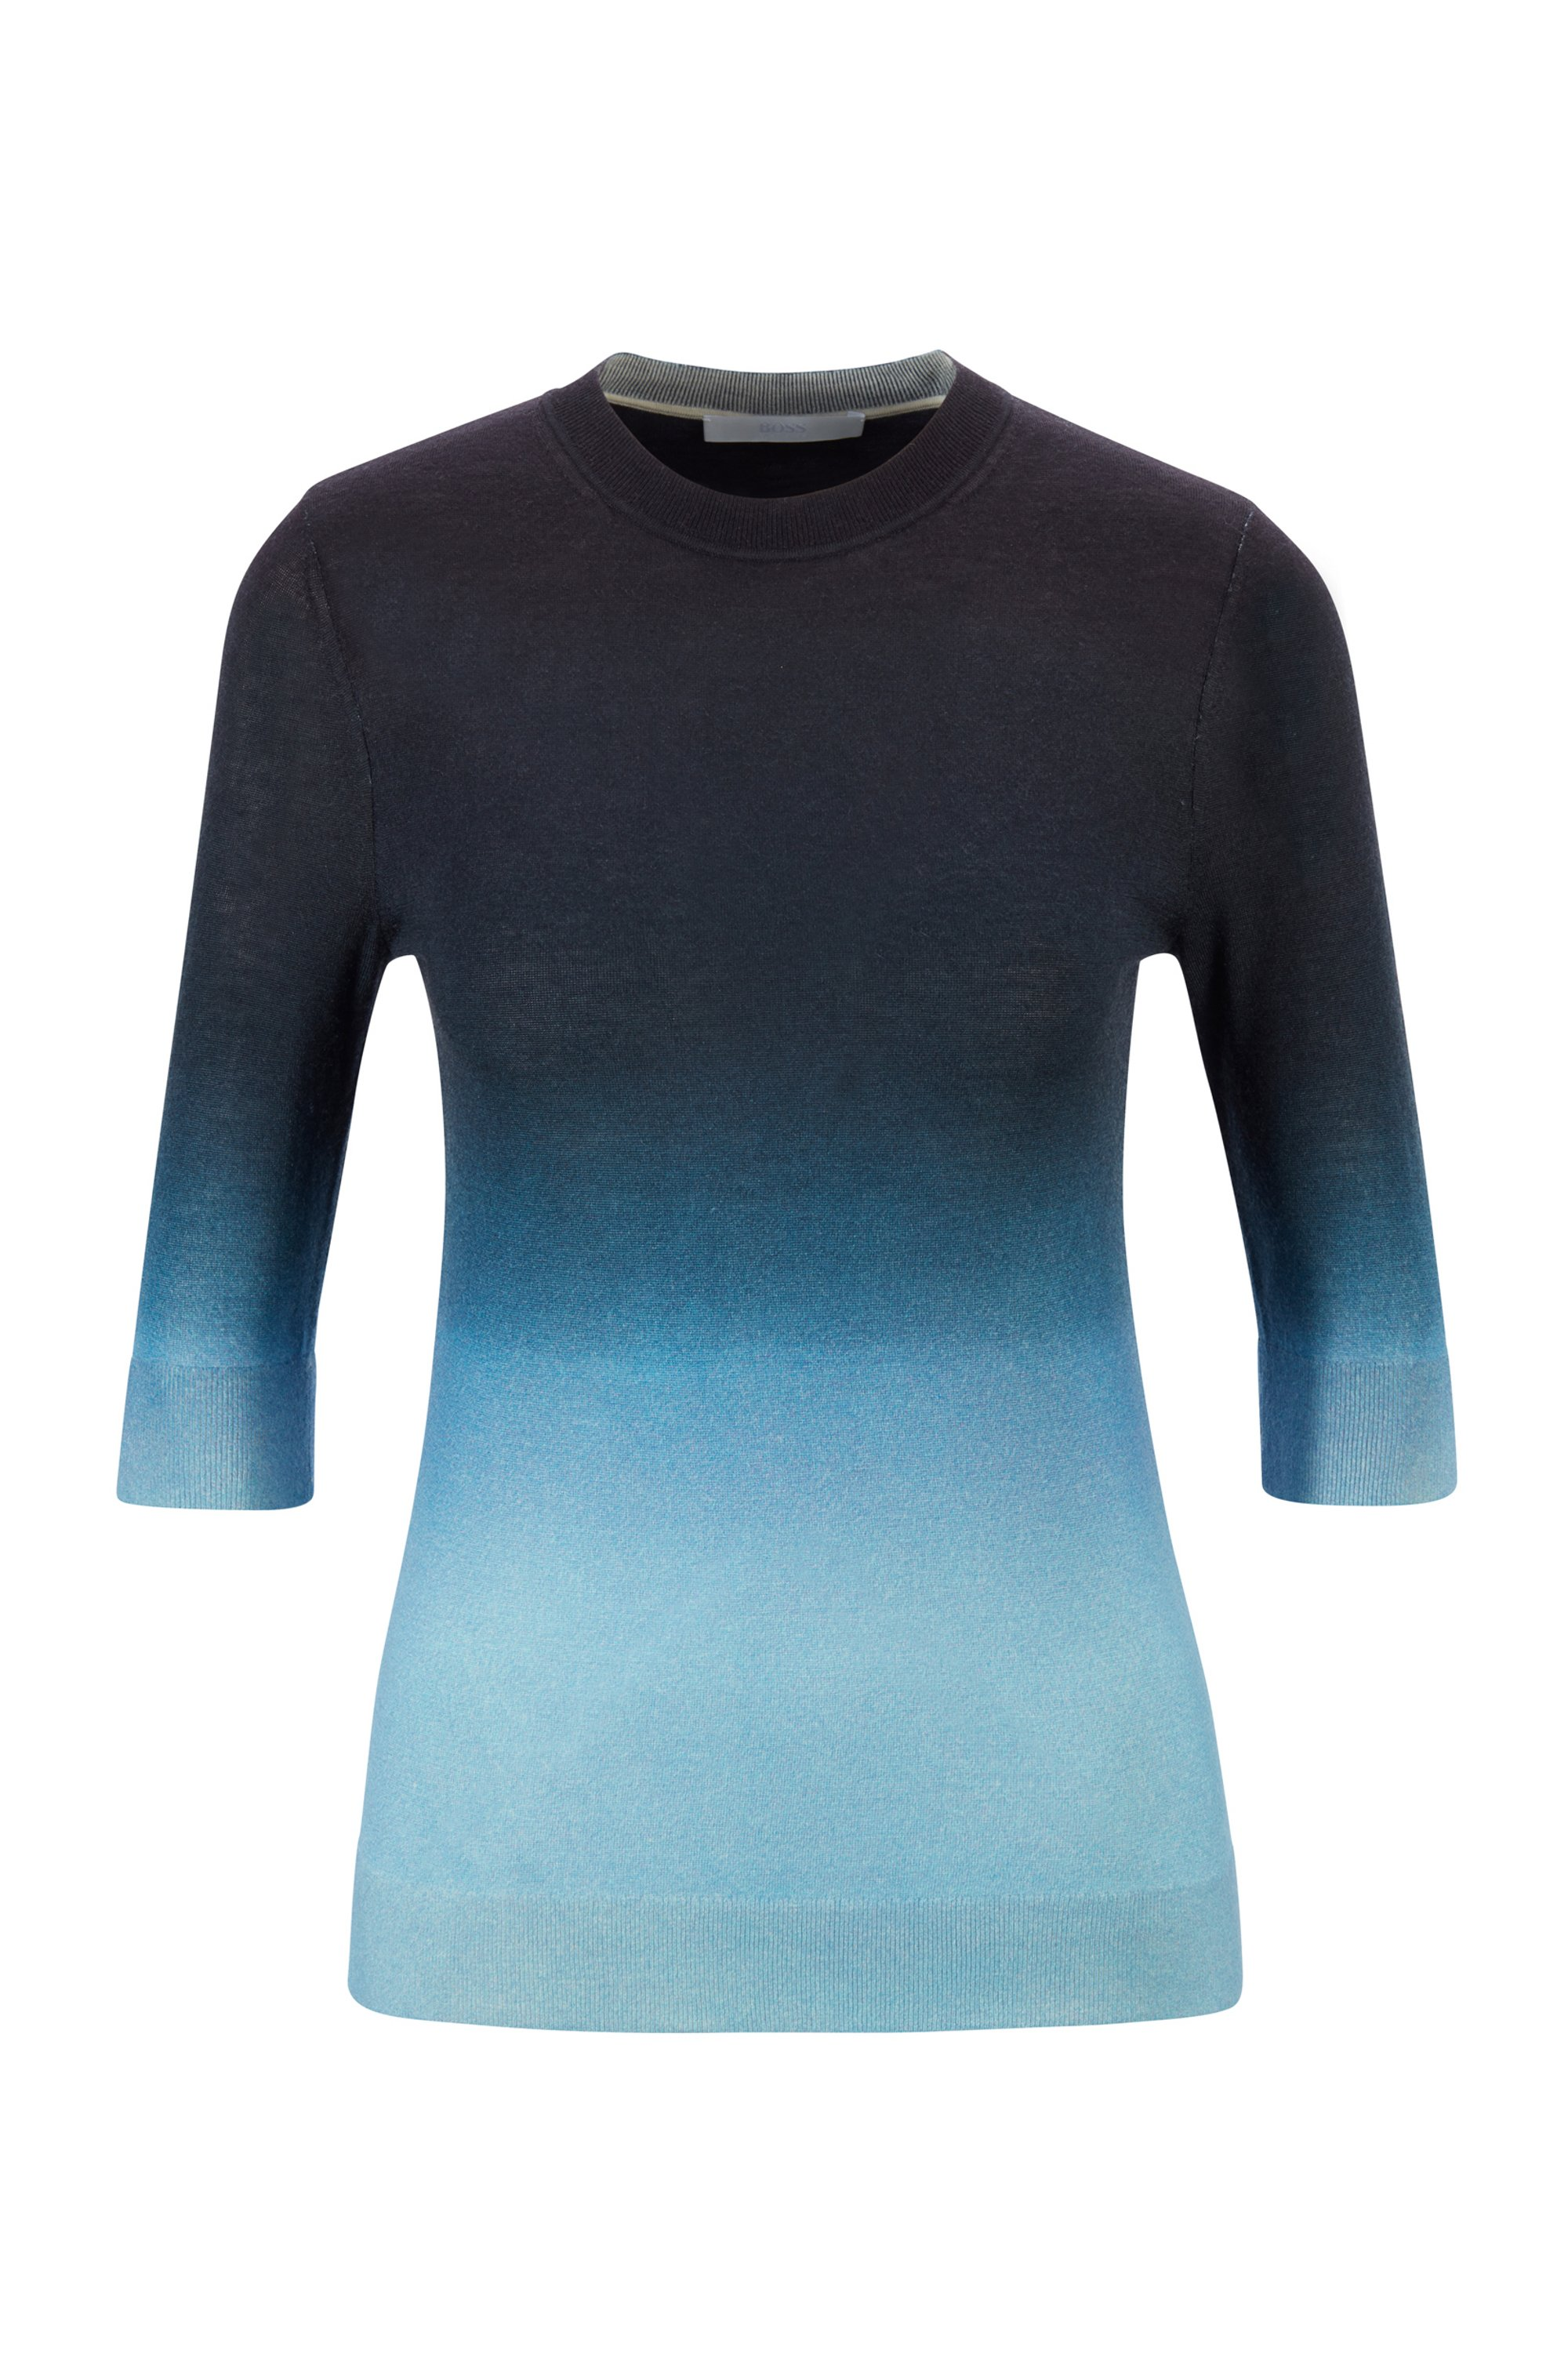 Virgin-wool sweater with ombré print, Patterned